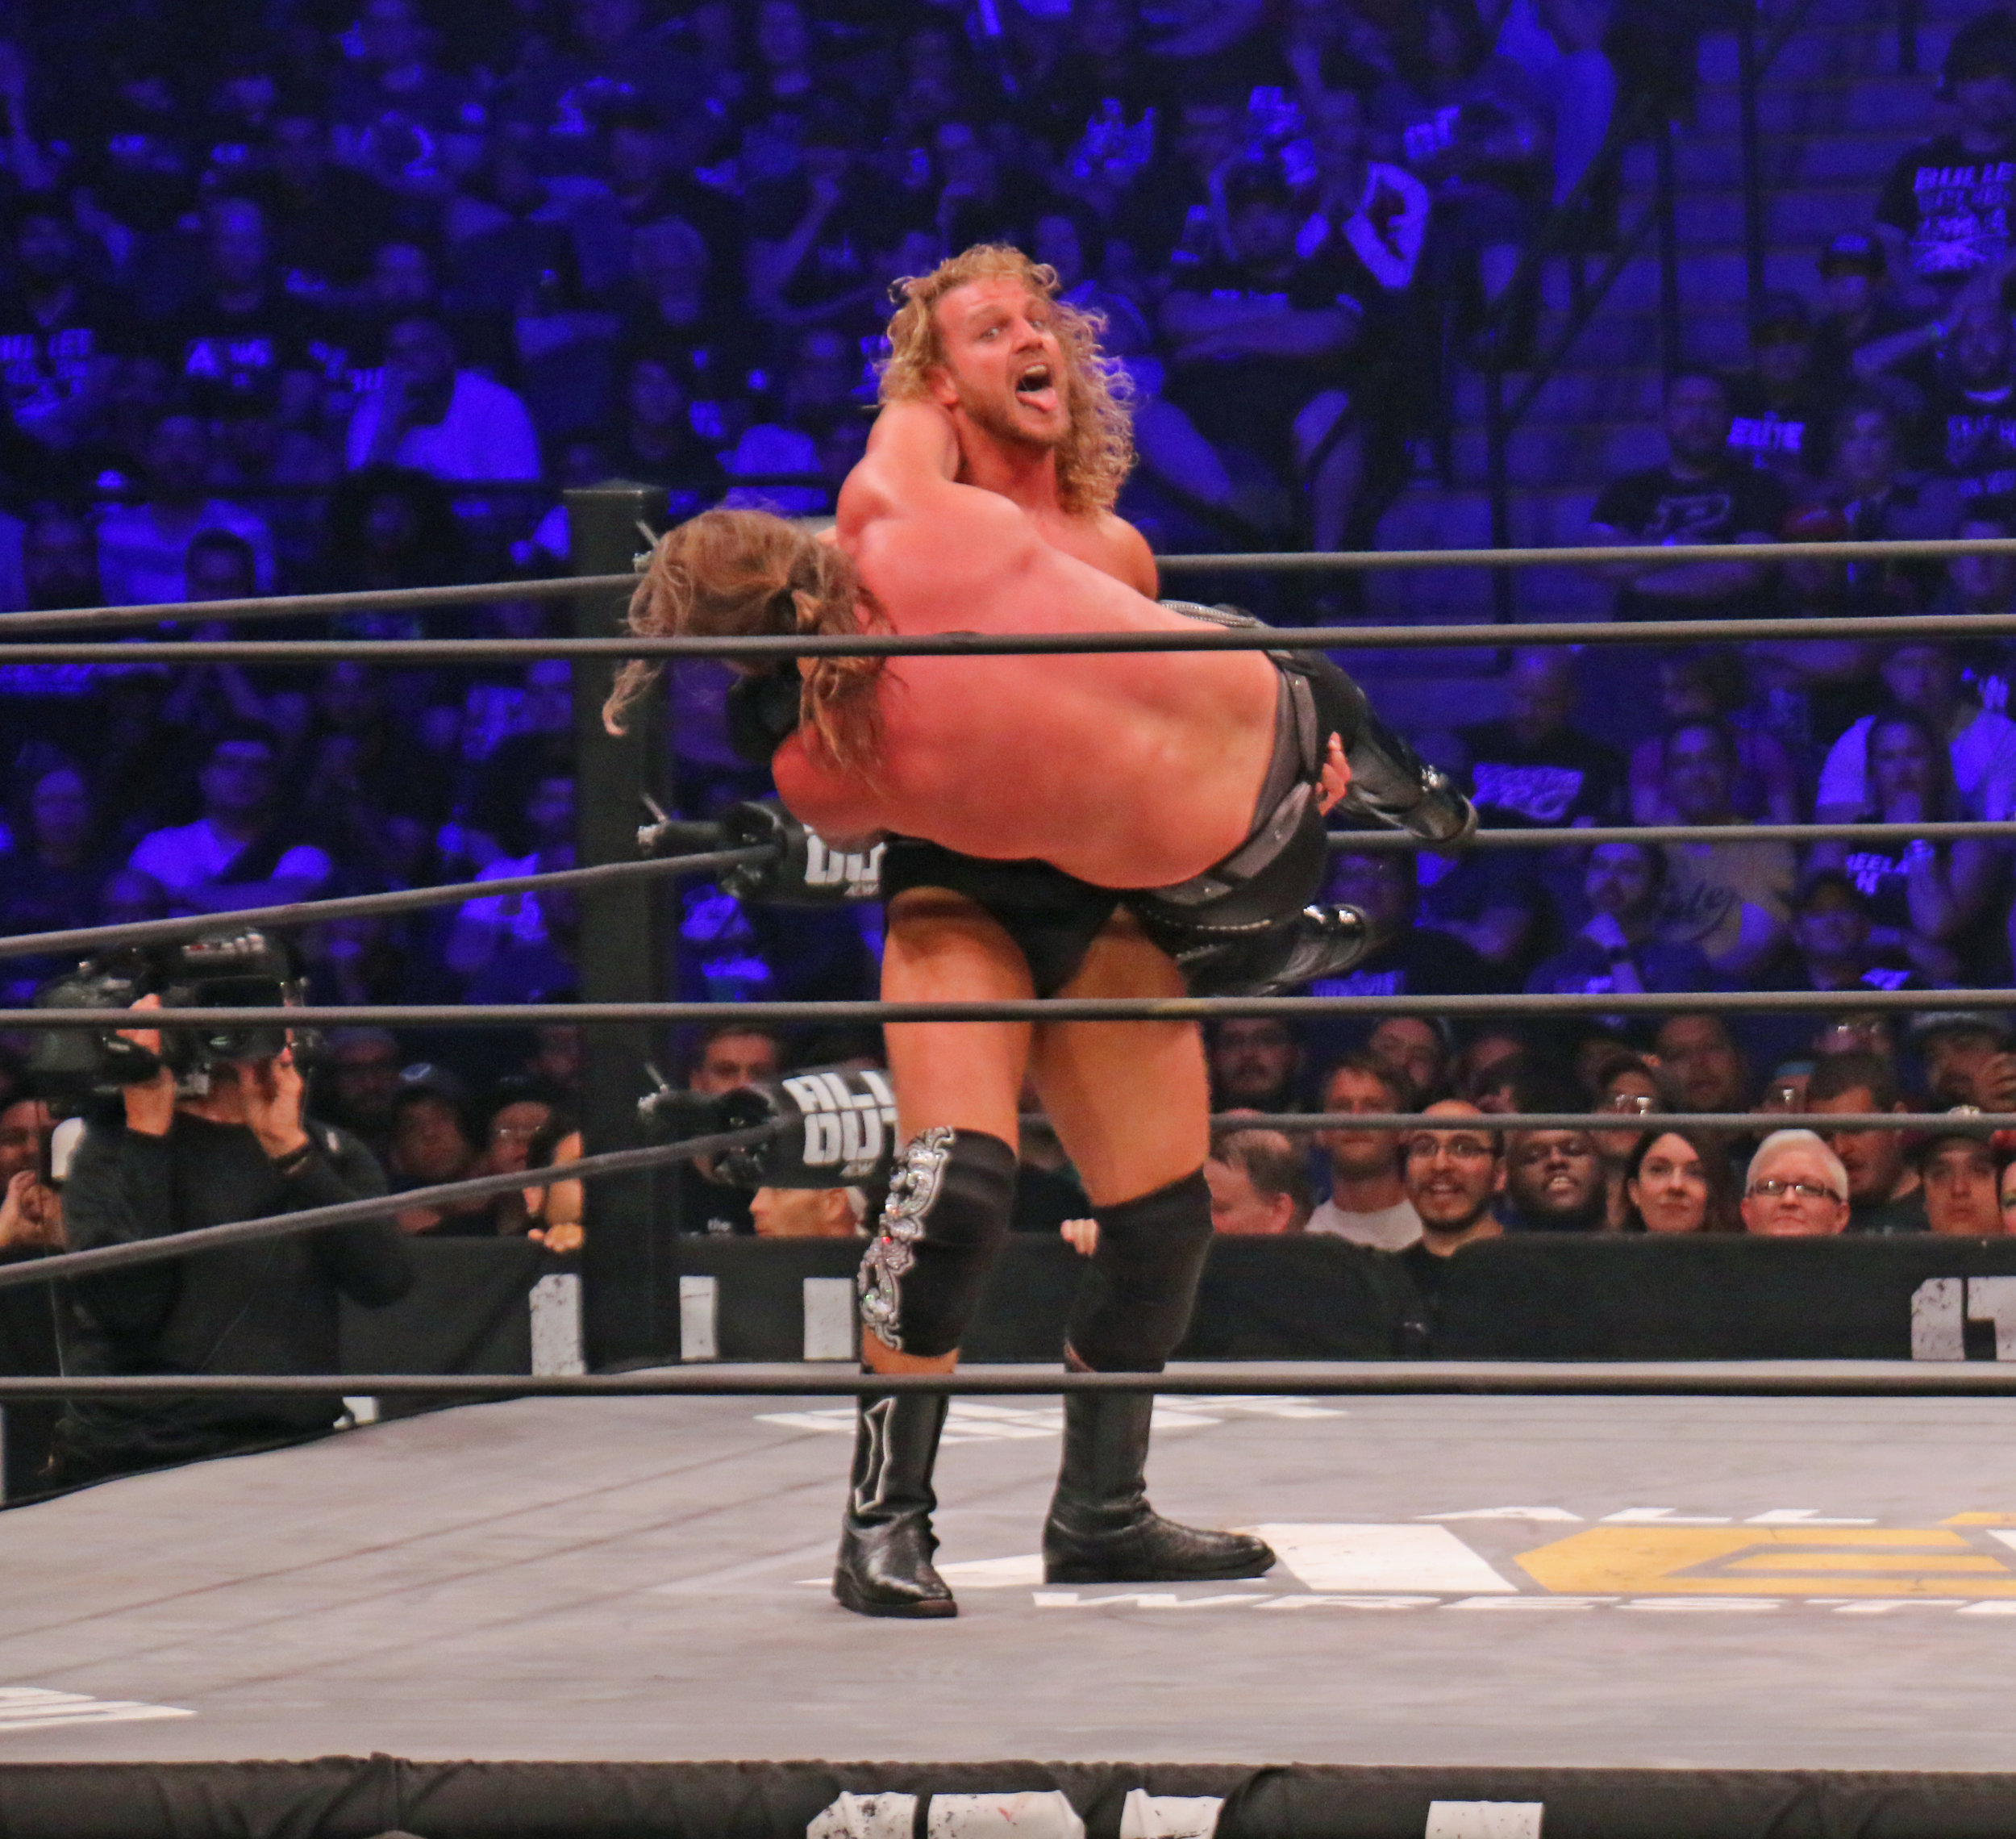 Hangman Page has control of Chris Jericho during the AEW Championship match.